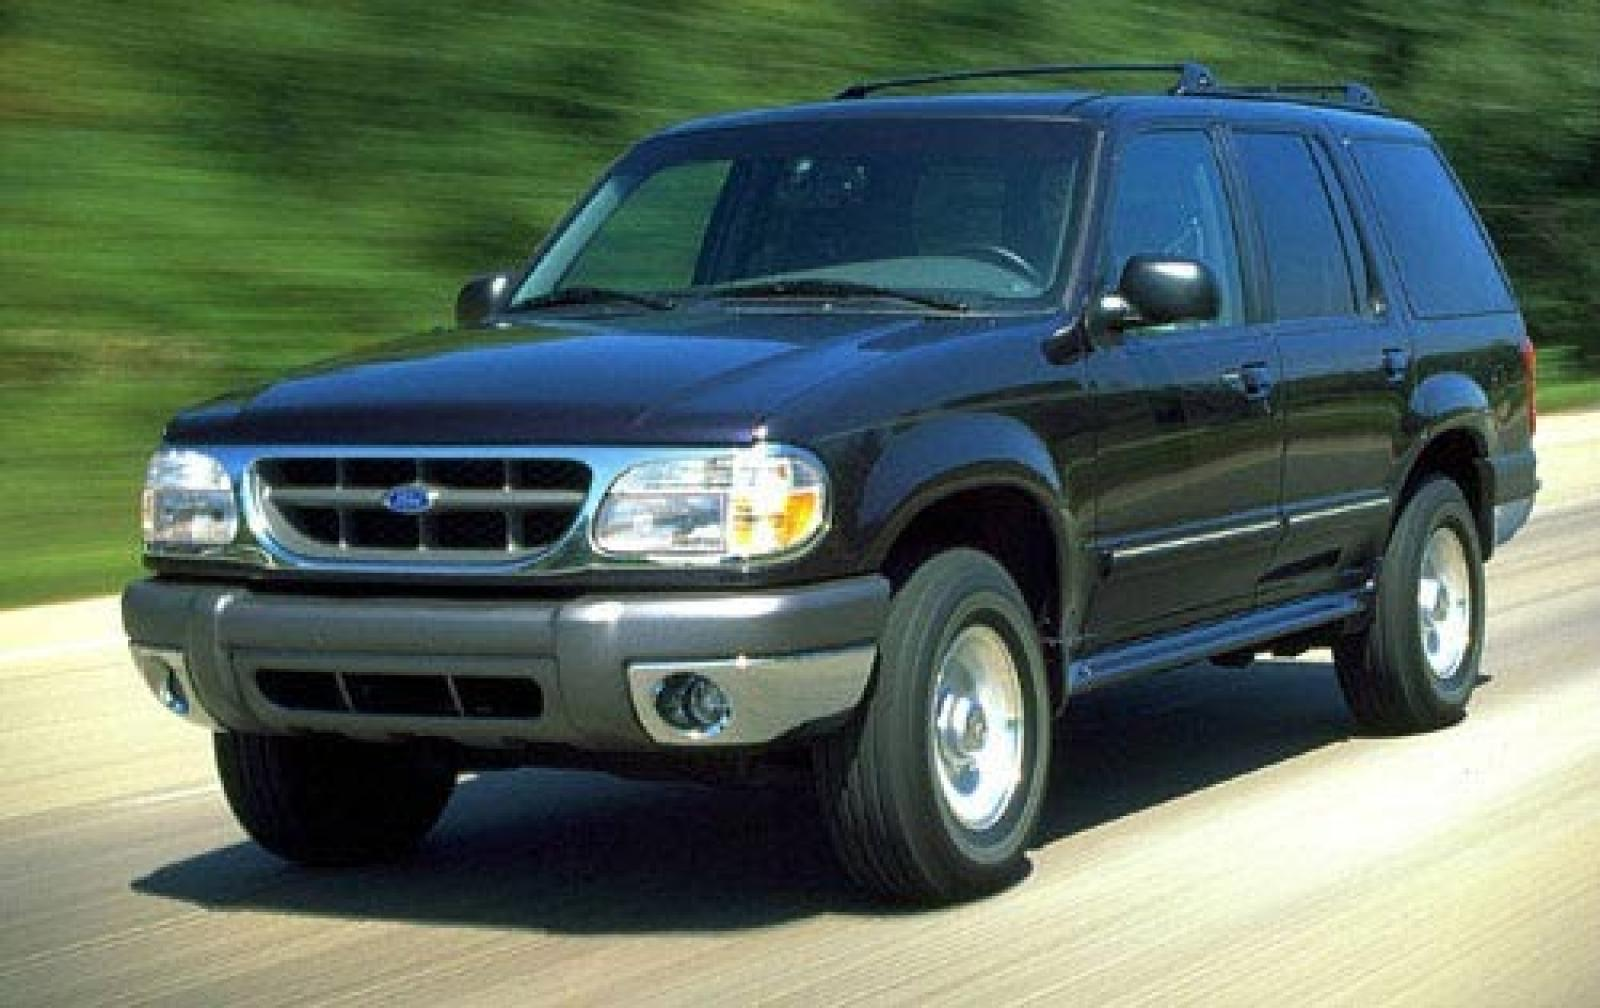 1999 ford explorer information and photos zombiedrive for Motor oil for ford explorer